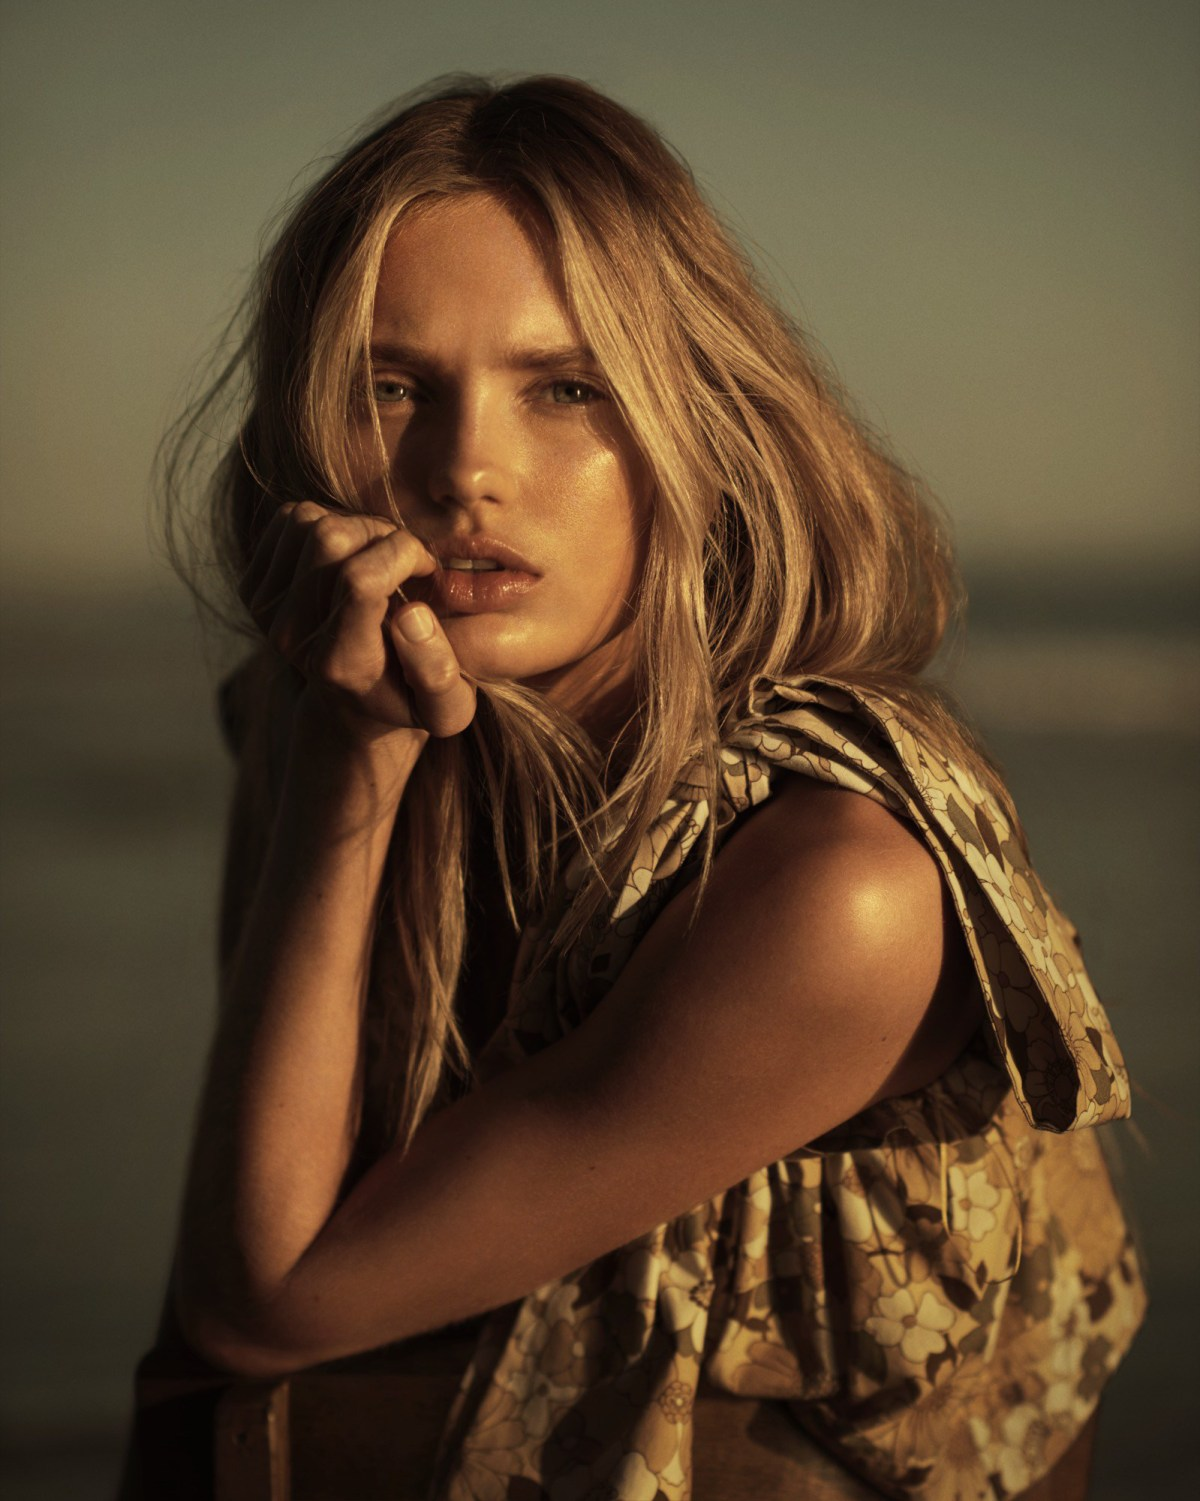 Romee Strijd by Jan Welters for Vogue Netherlands